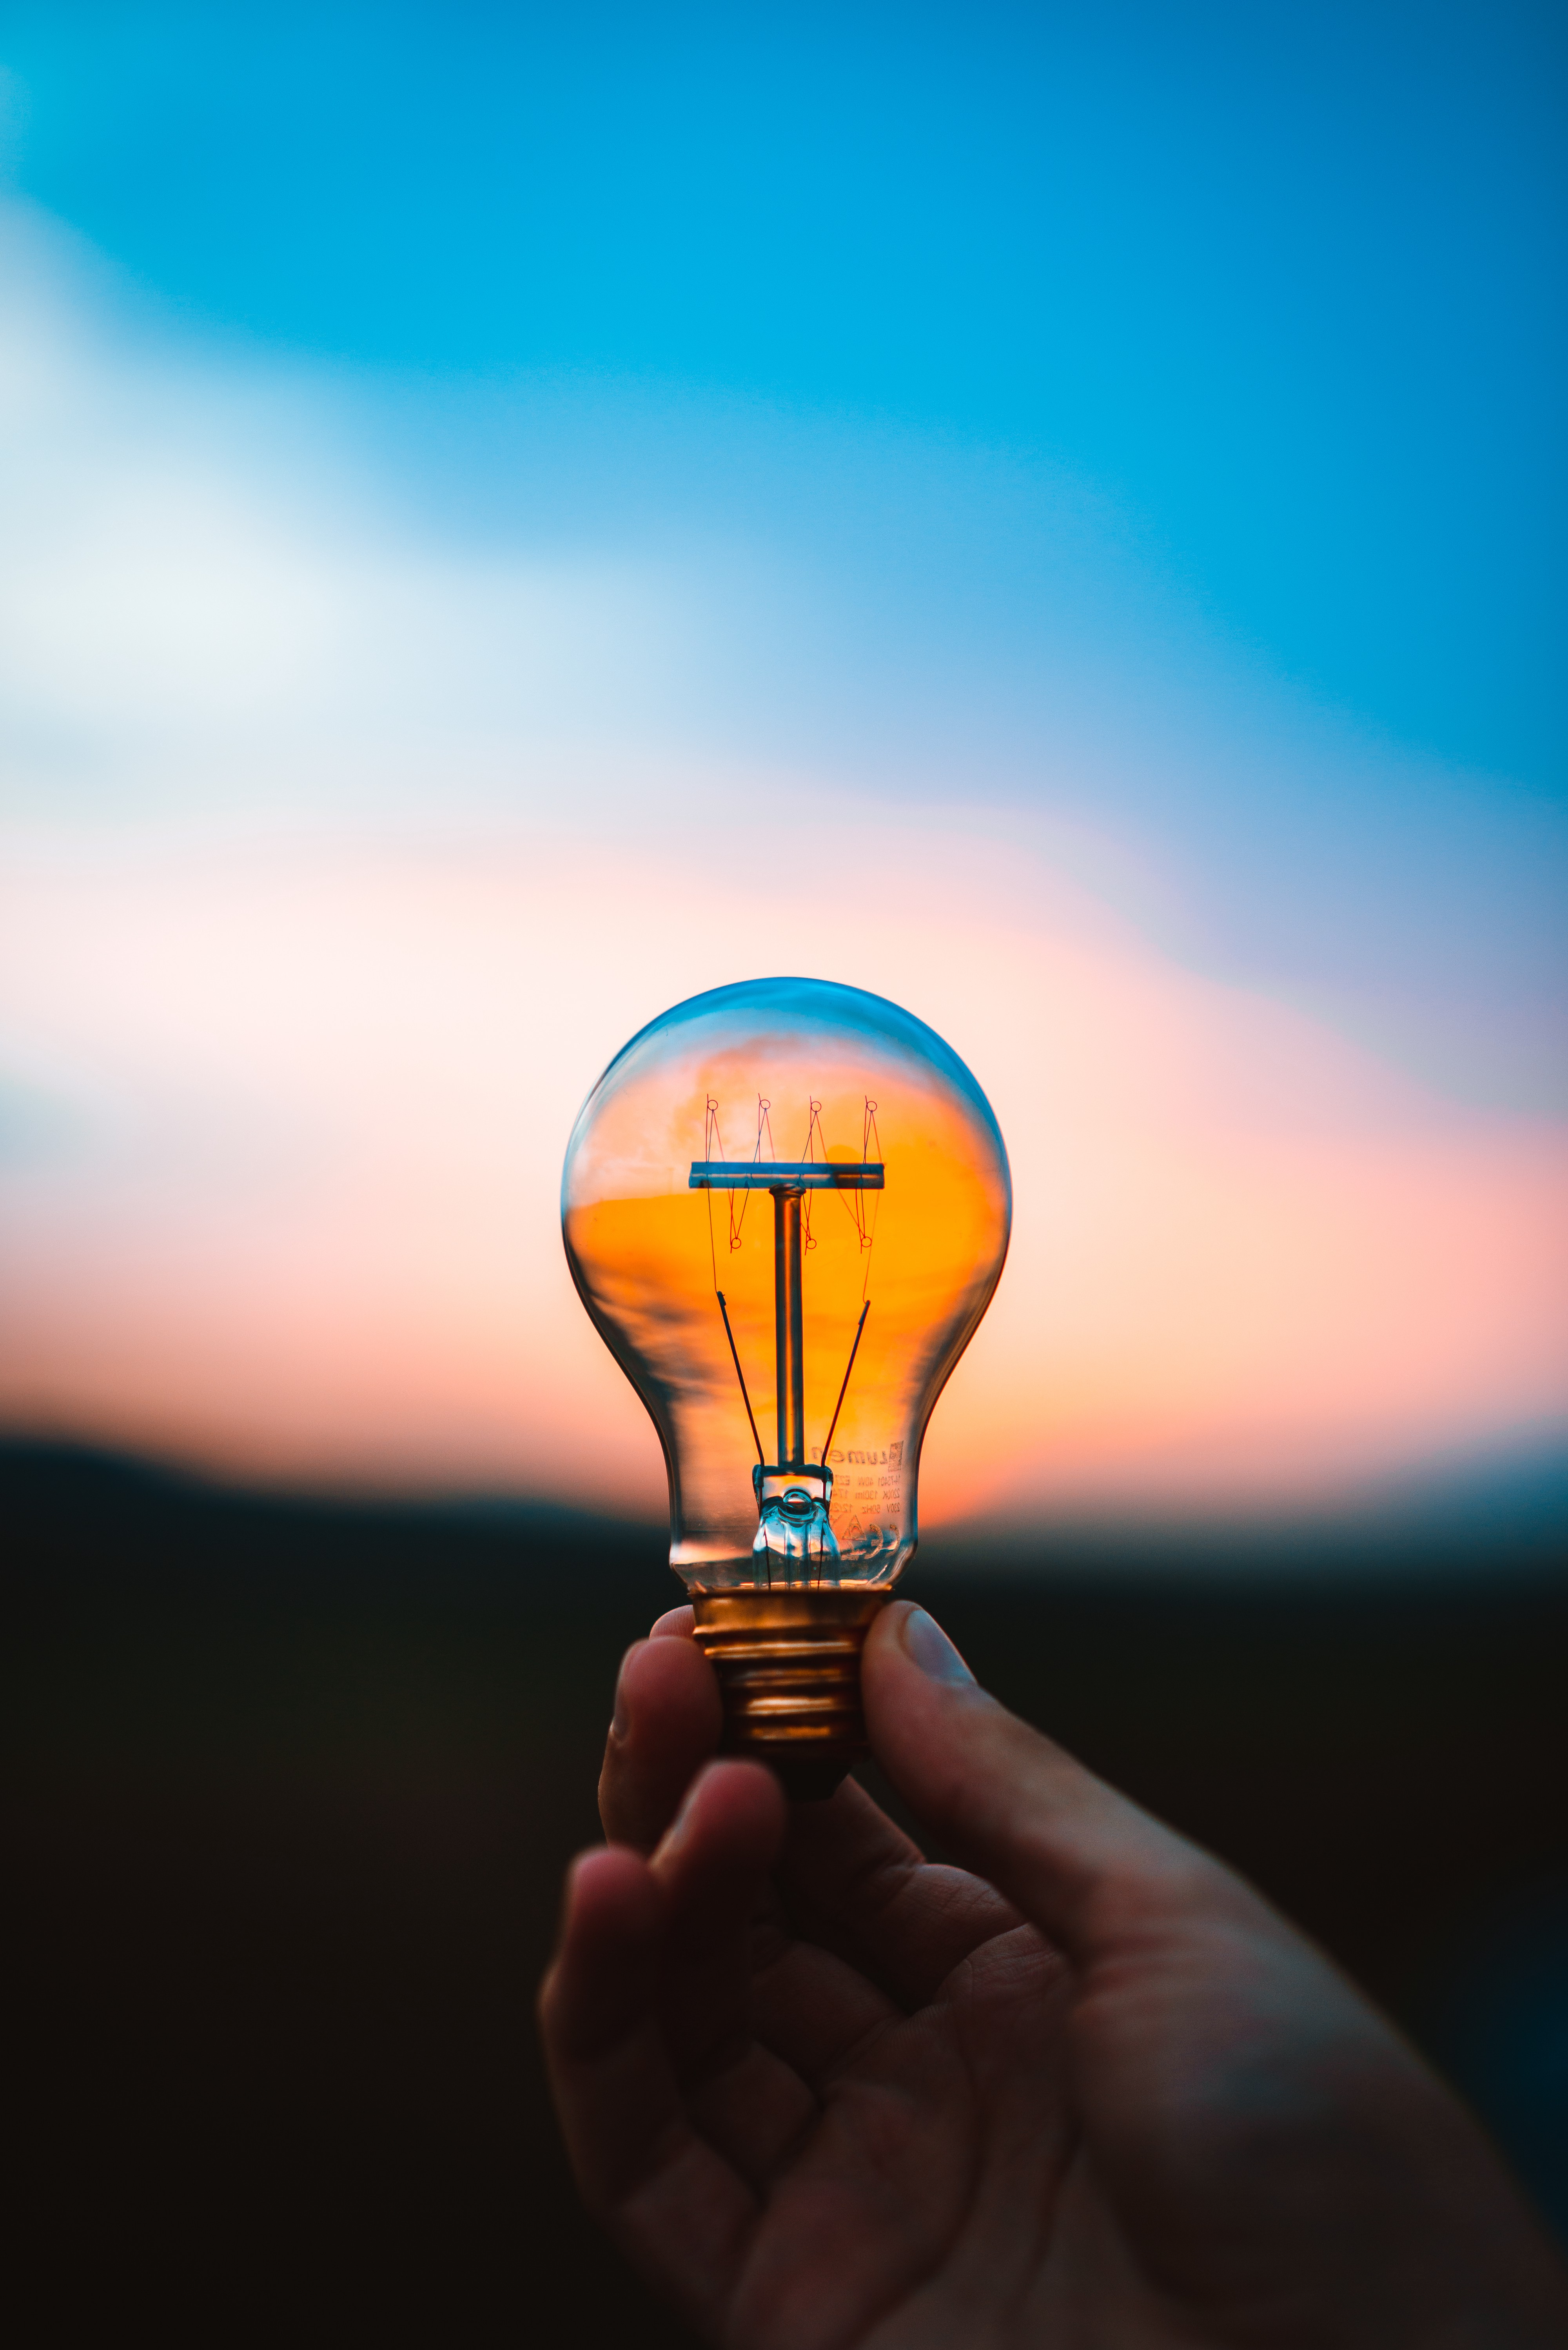 When will you know when the lightbulb will go off in your head?